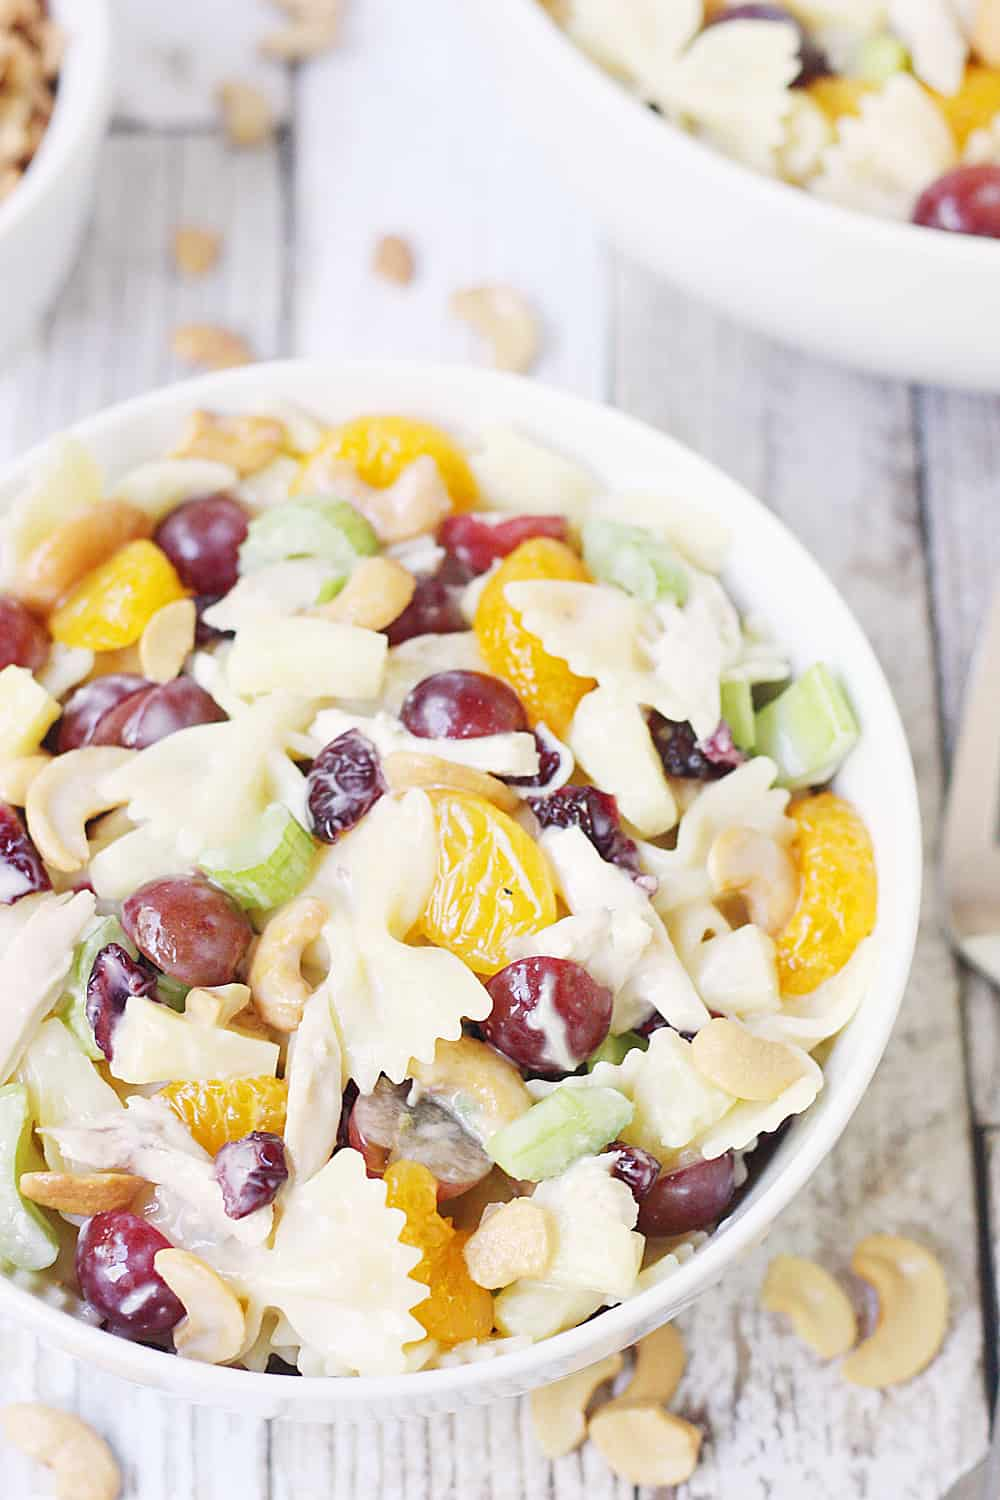 Chicken Bow Tie Pasta Salad -- Chicken bow tie pasta salad is the perfect summer salad! It combines so many delicious ingredients with the crunch of cashews and creamy coleslaw dressing.